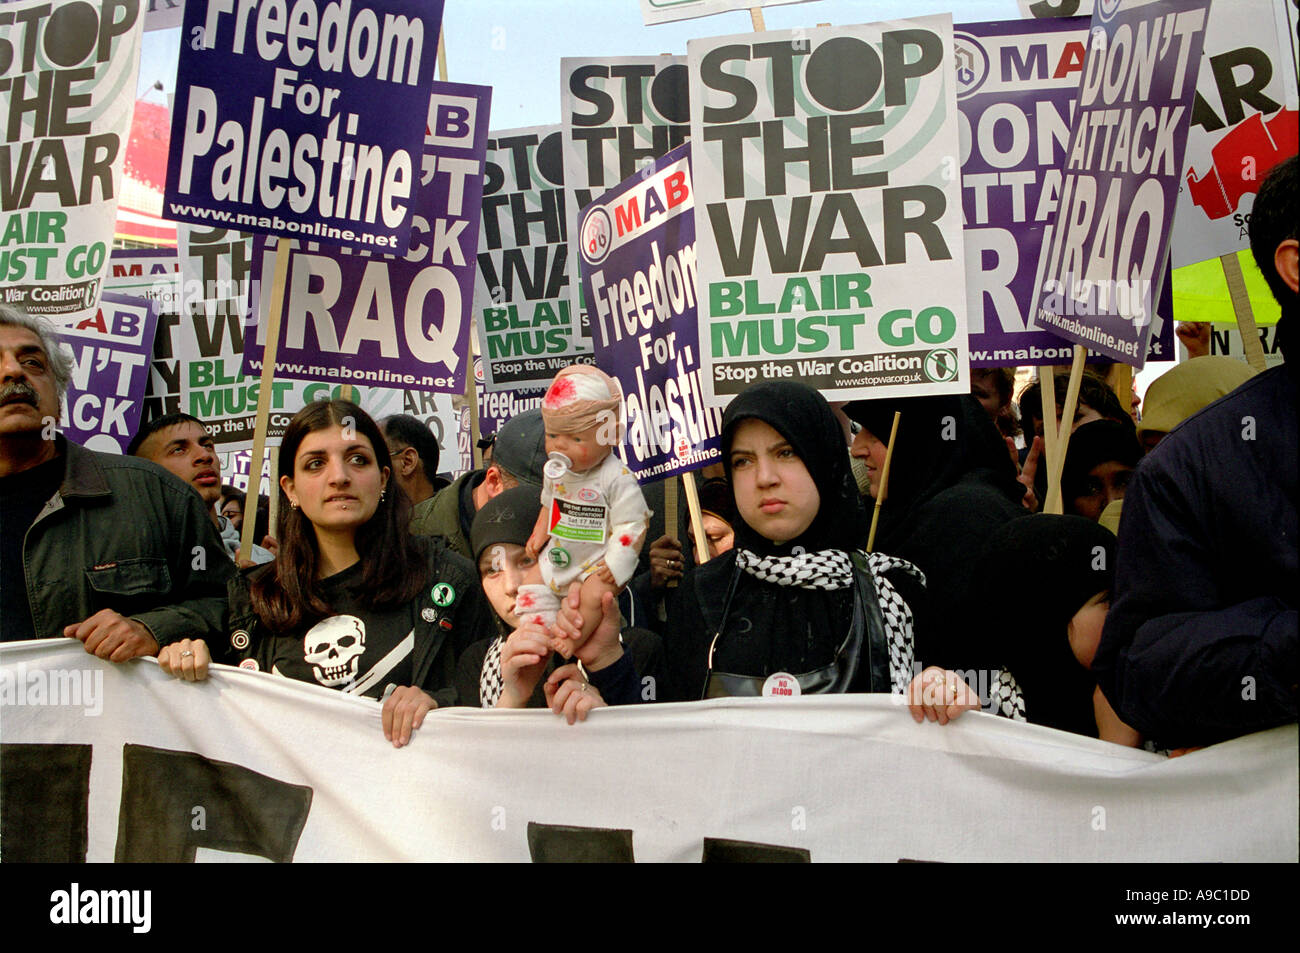 Muslim protestors marching through central London protesting the war in Iraq in February 2003. - Stock Image